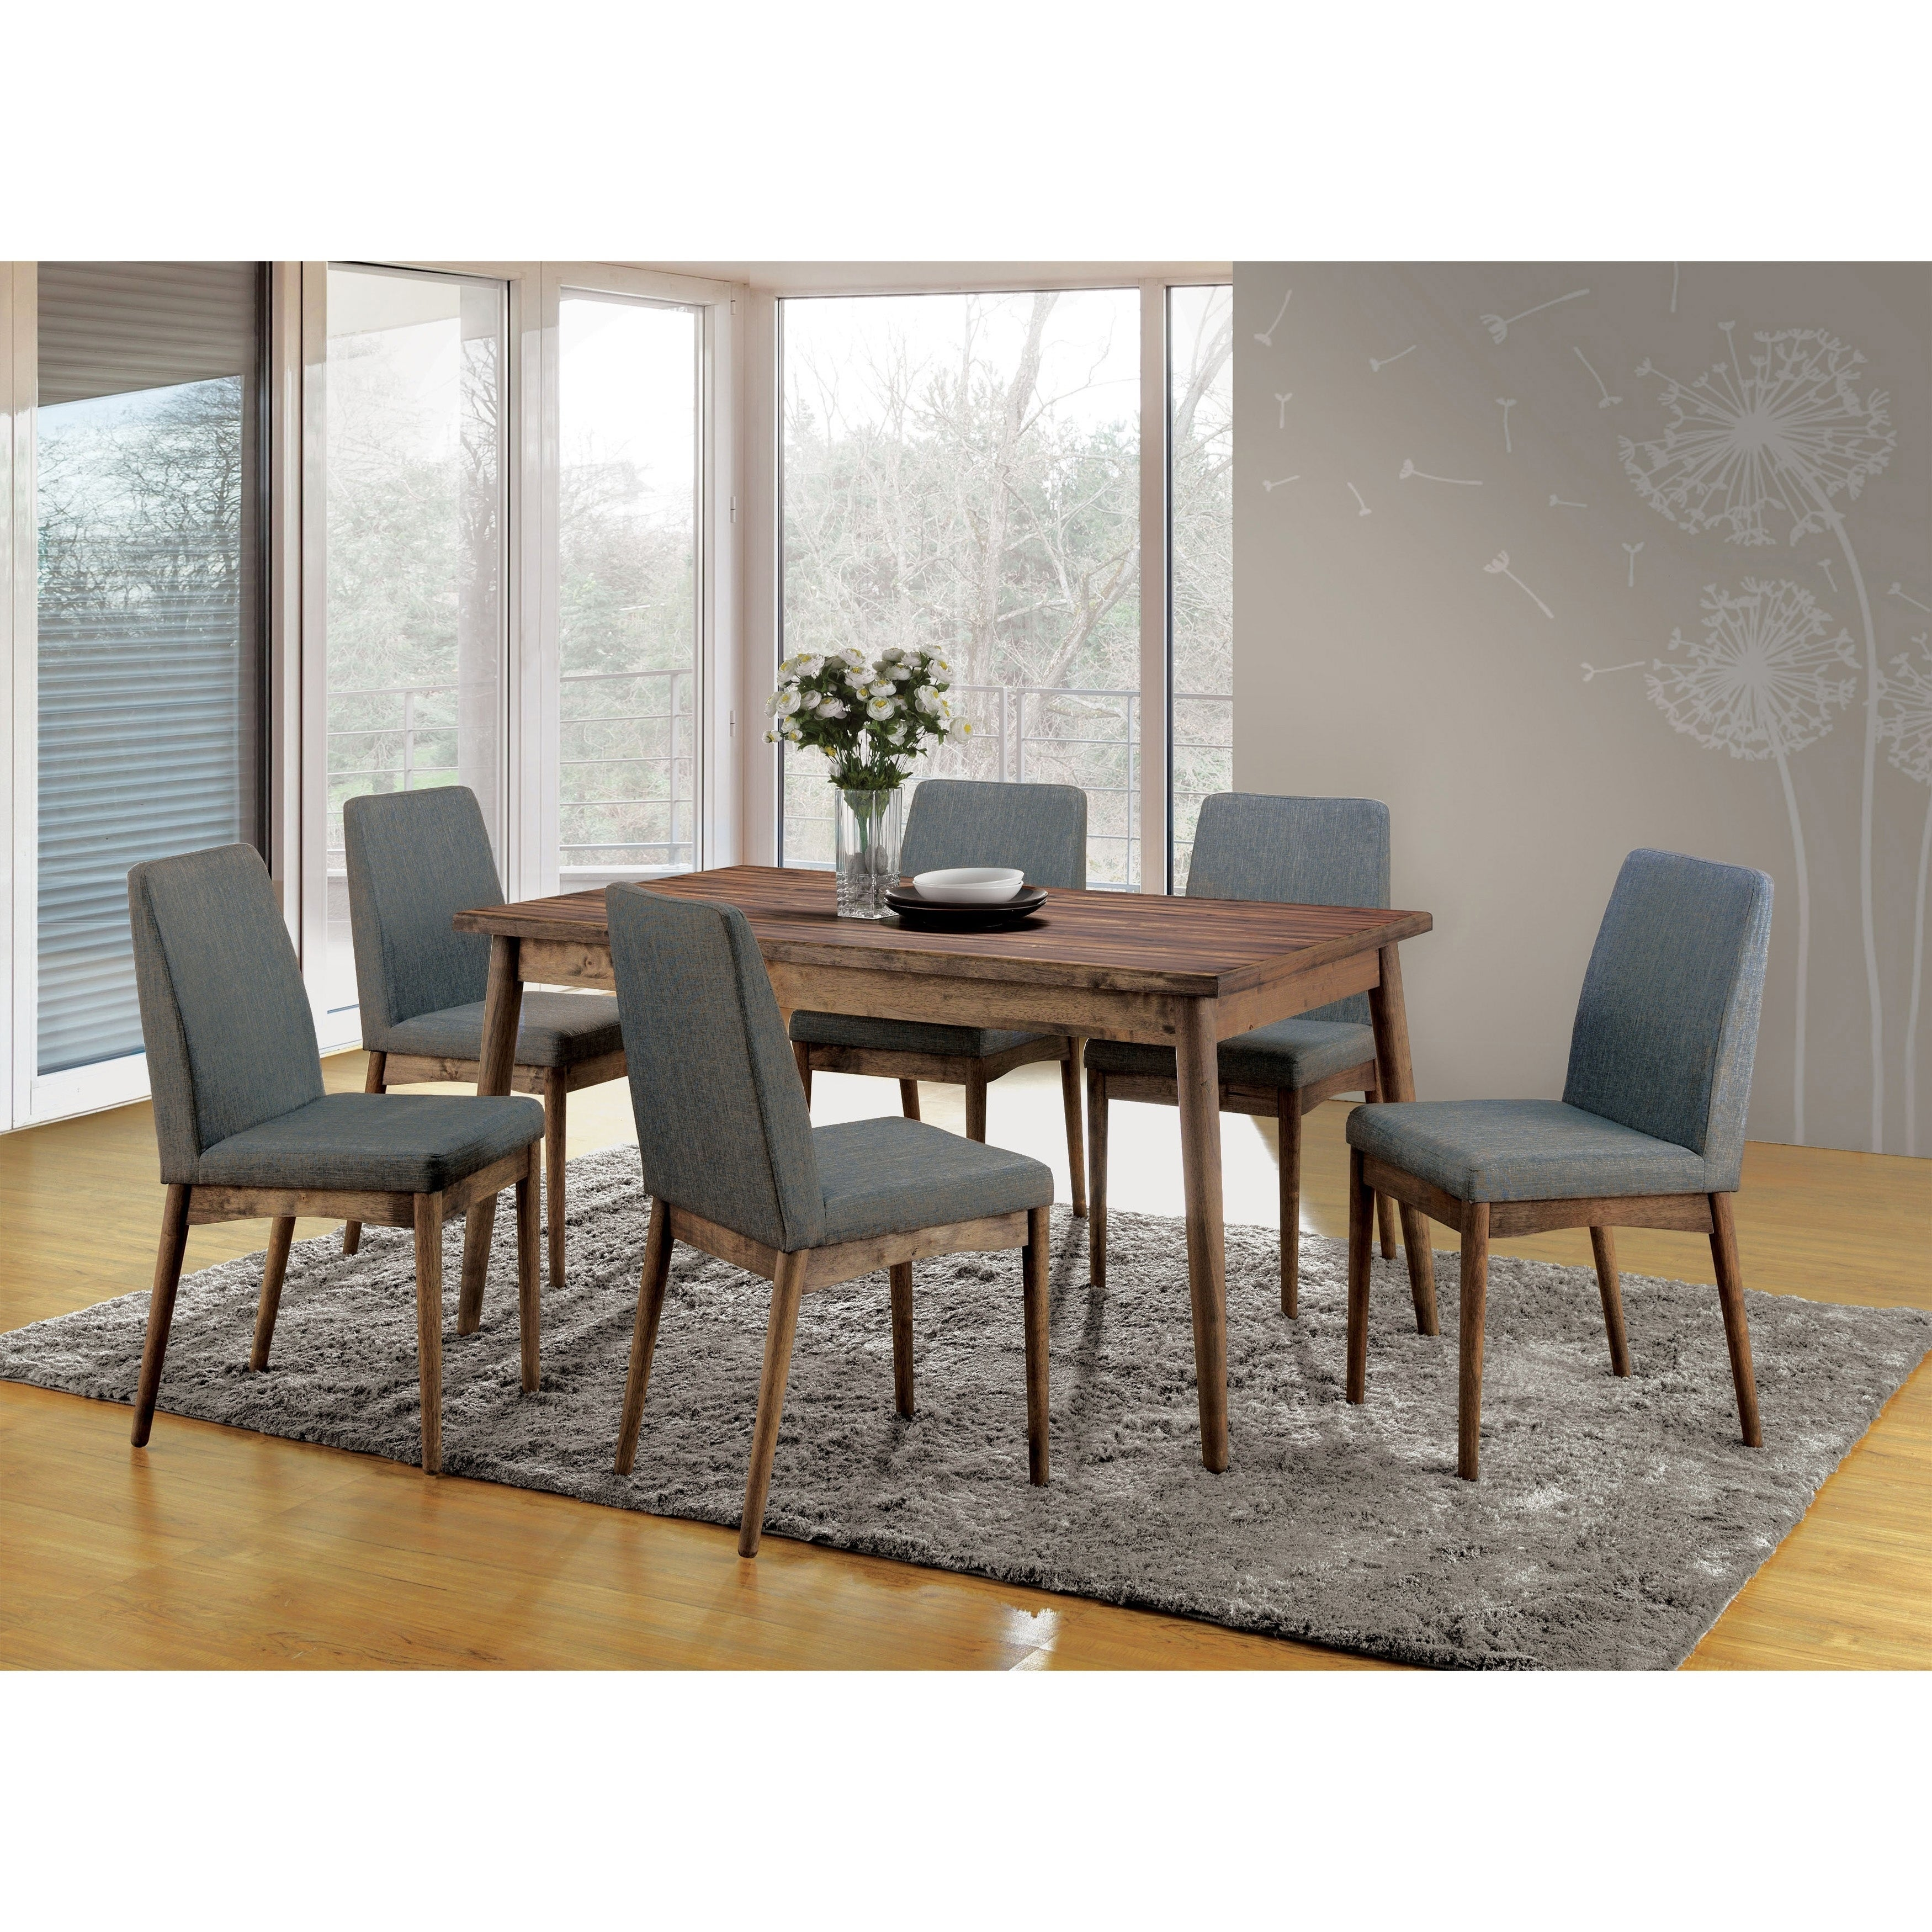 Reynorth Mid Century Modern Natural Tone 7 Piece Dining Set By Foa